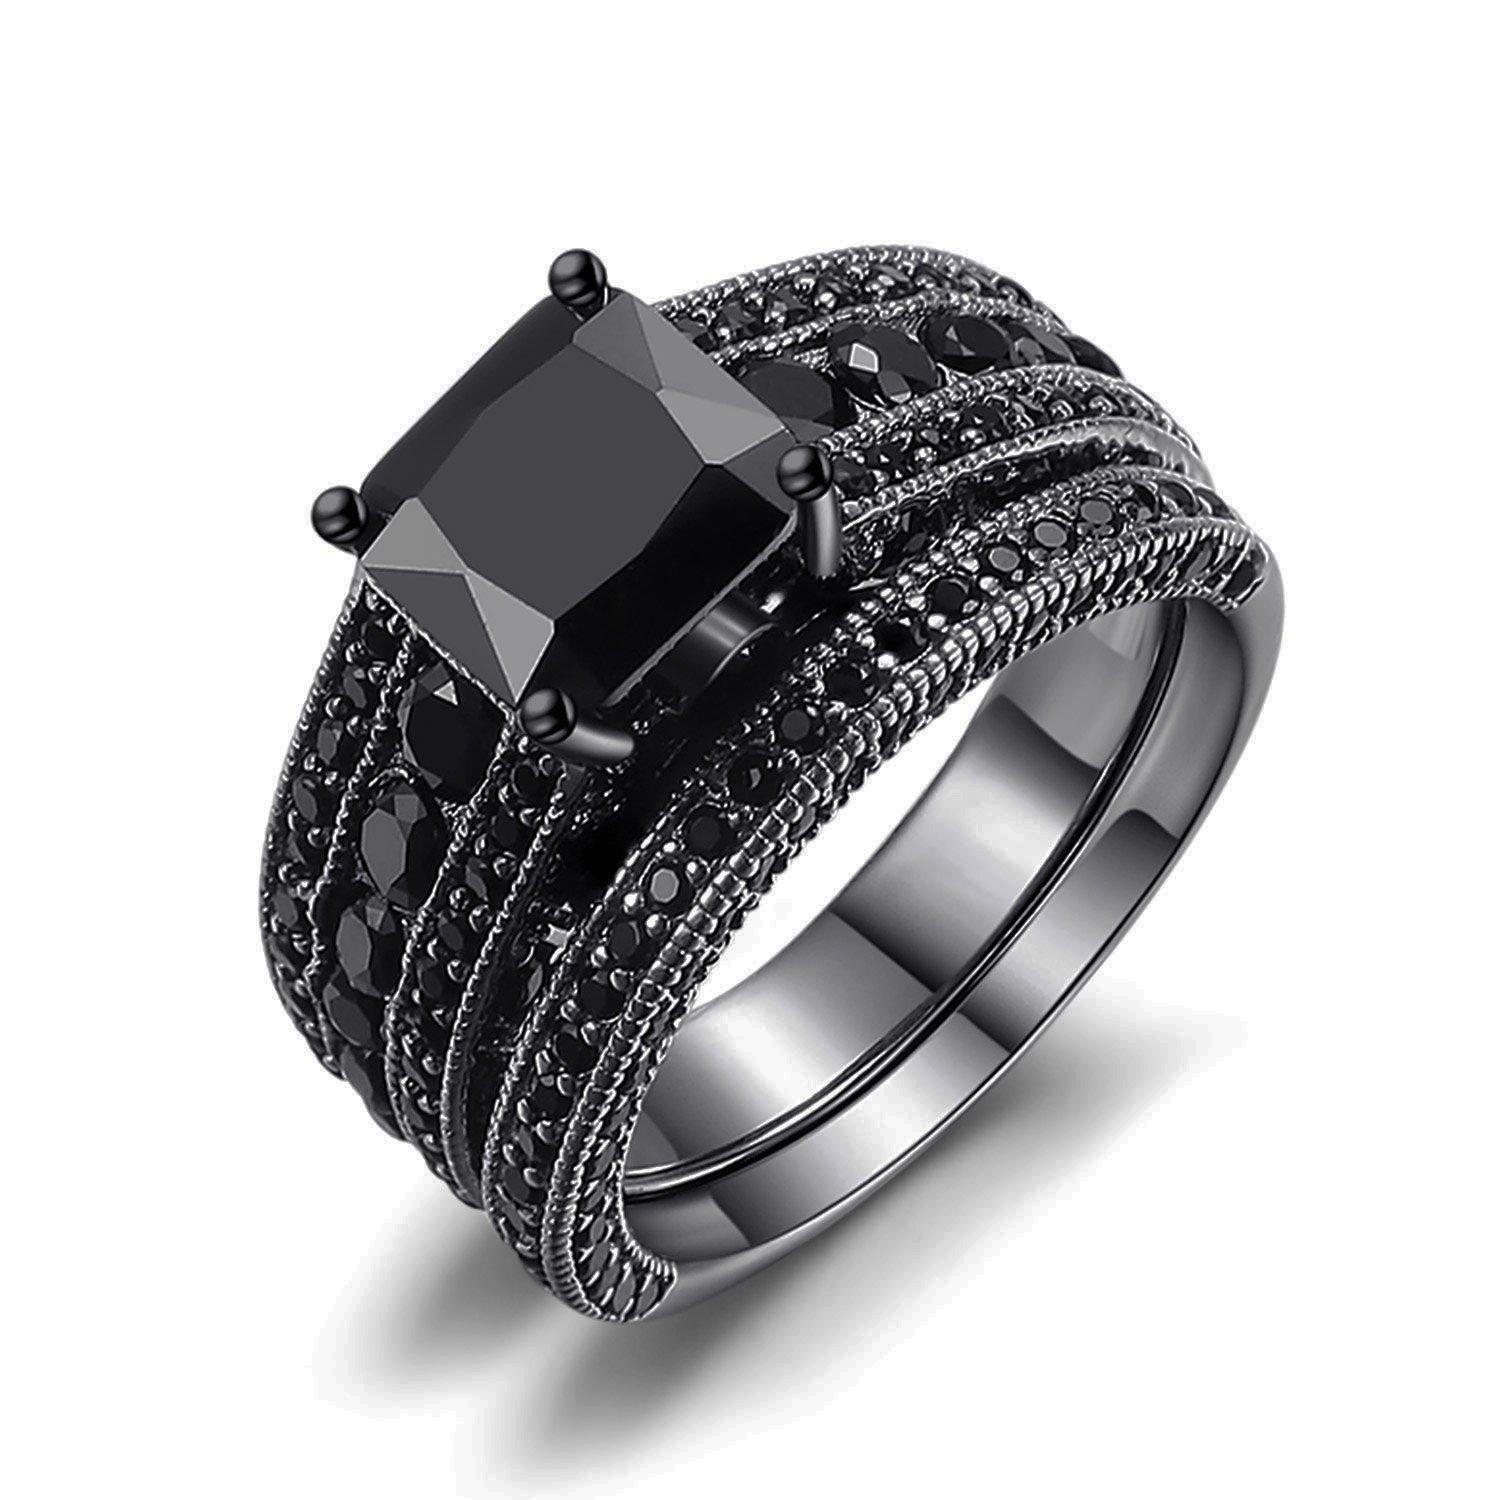 Castillna Black Sterling Silver Princess Cut Created Black Sapphire Wedding Engagement Bridal Rings Set